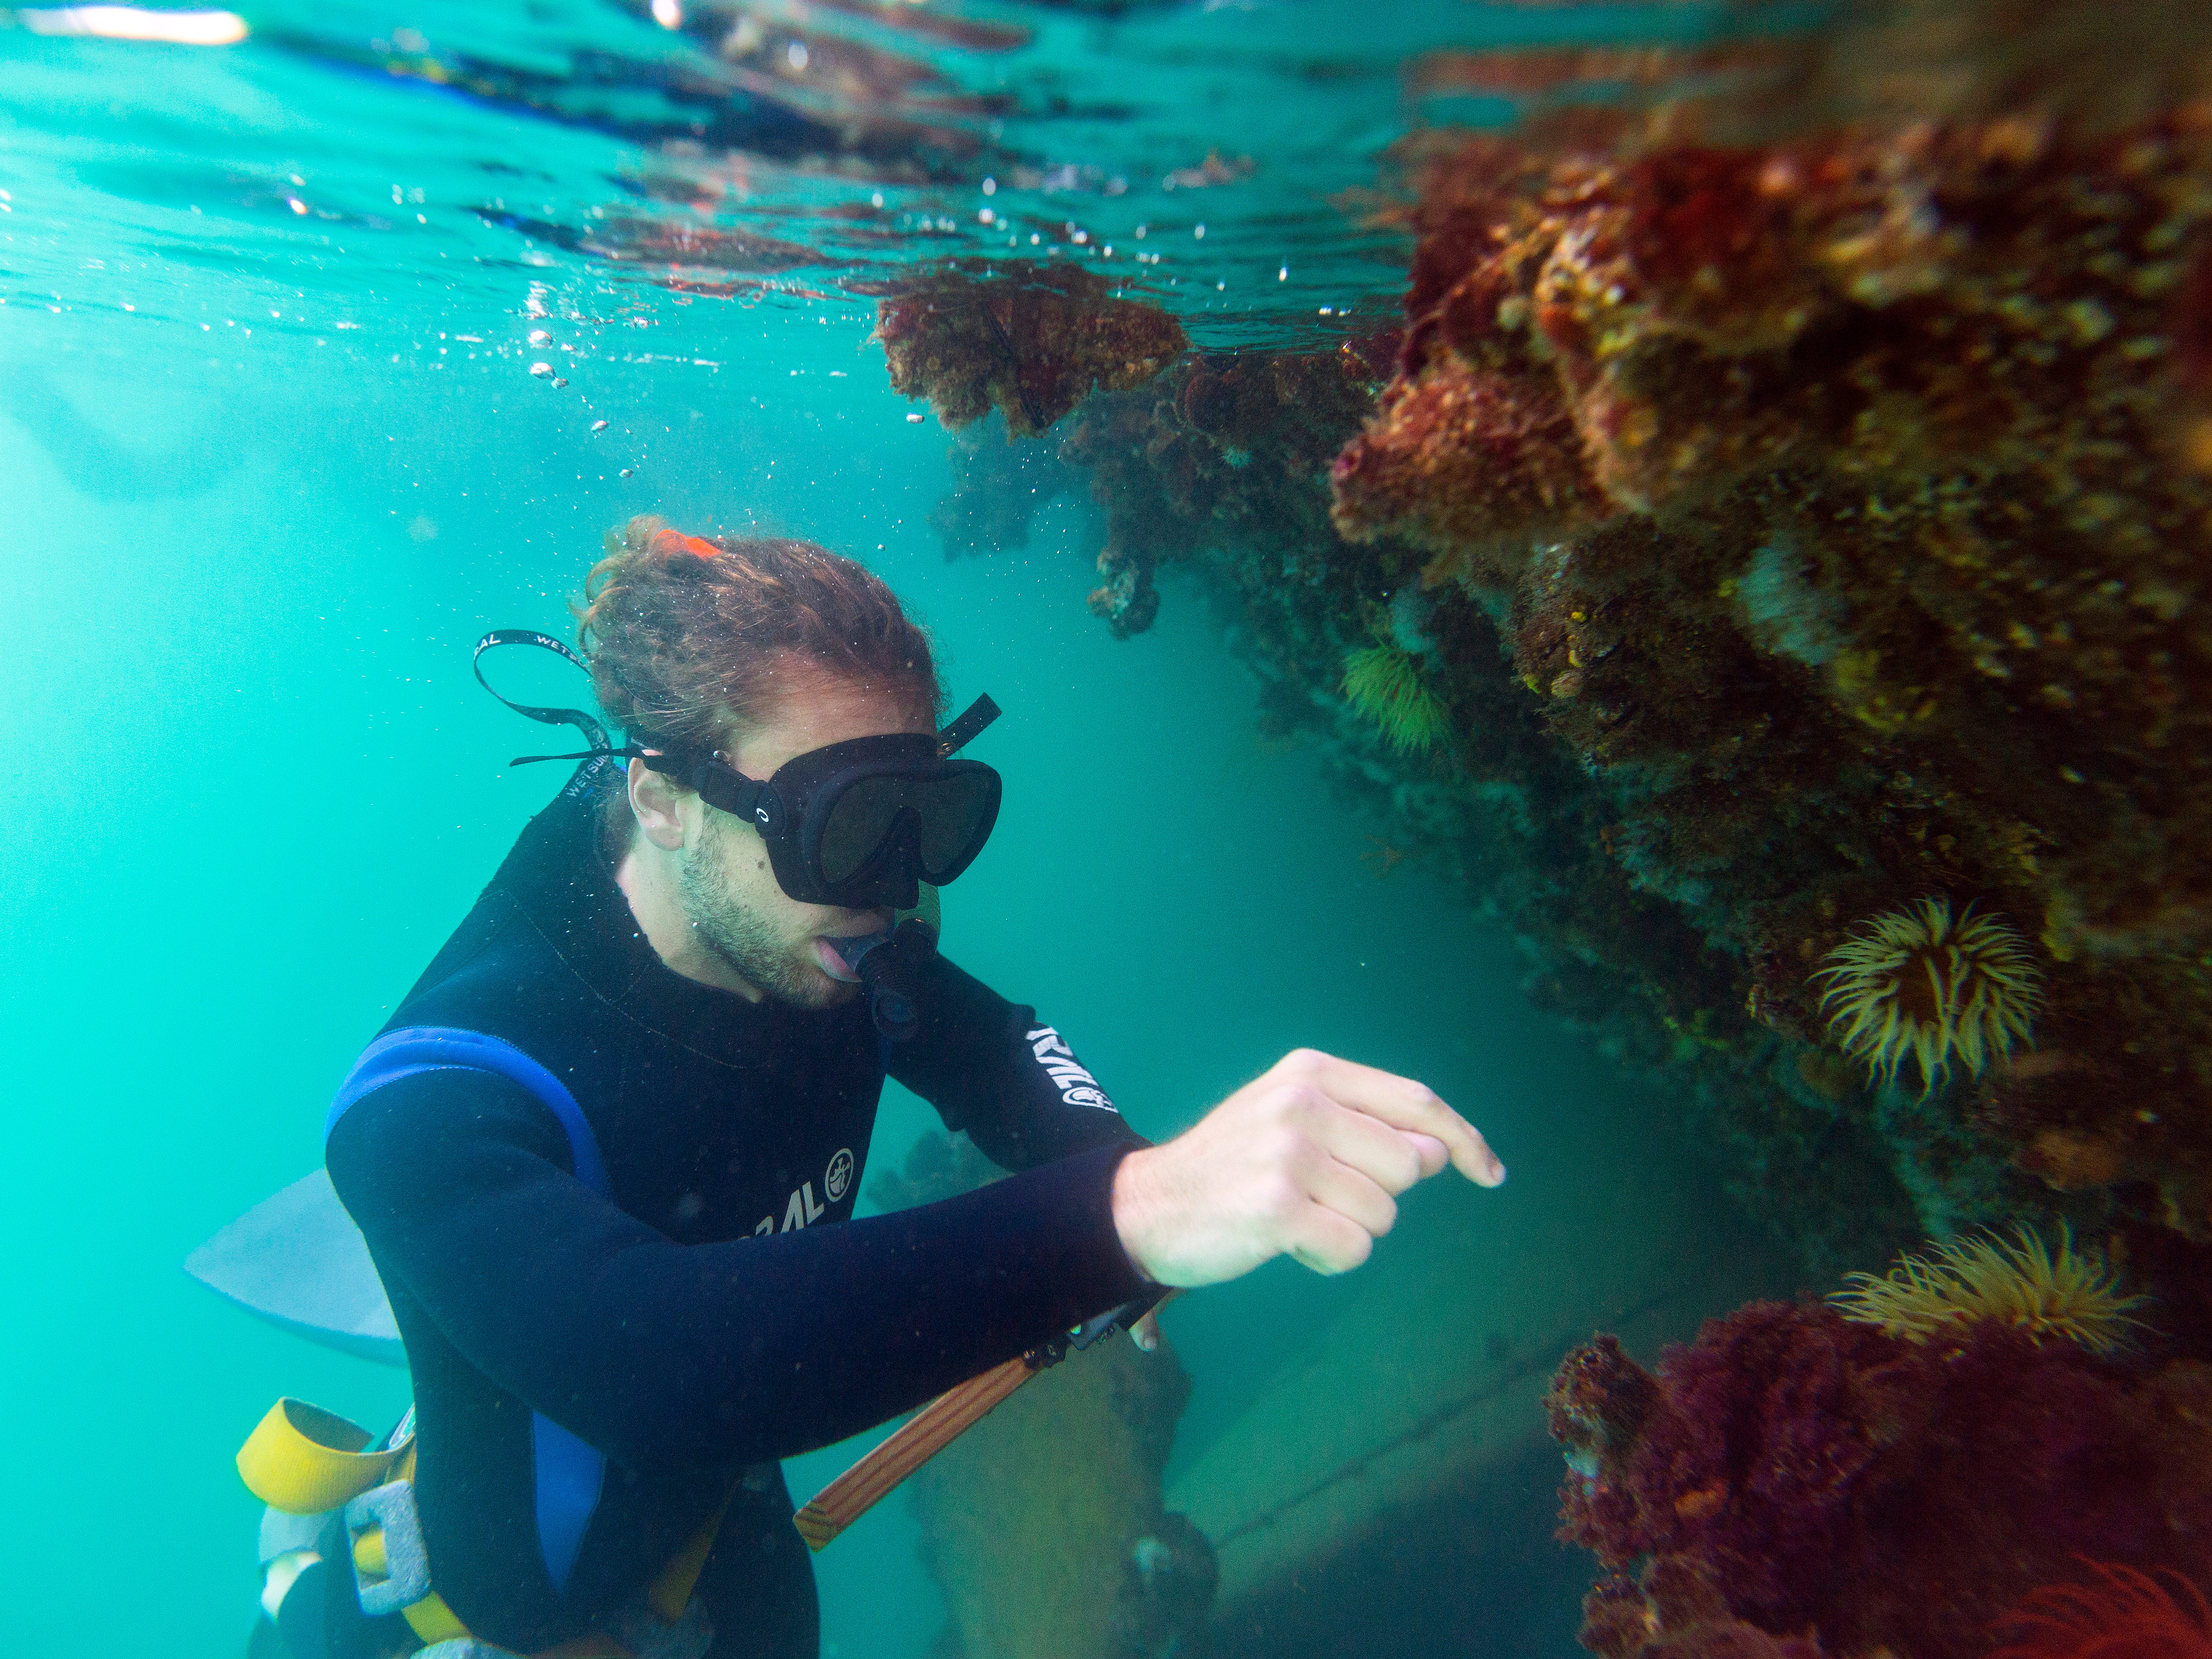 A marine biology student identifies species growing on the hull of a ship during a marine biology survey in the Indian Ocean in False Bay, Cape Town, South Africa 0n Dec. 22, 2018. Global warming isn't only cooking our atmosphere, its also heating up the oceans. The world's seas were the warmest on record in 2018, scientists announced Thursday. Also, ocean temperatures are rising faster than previously thought, a new paper said.